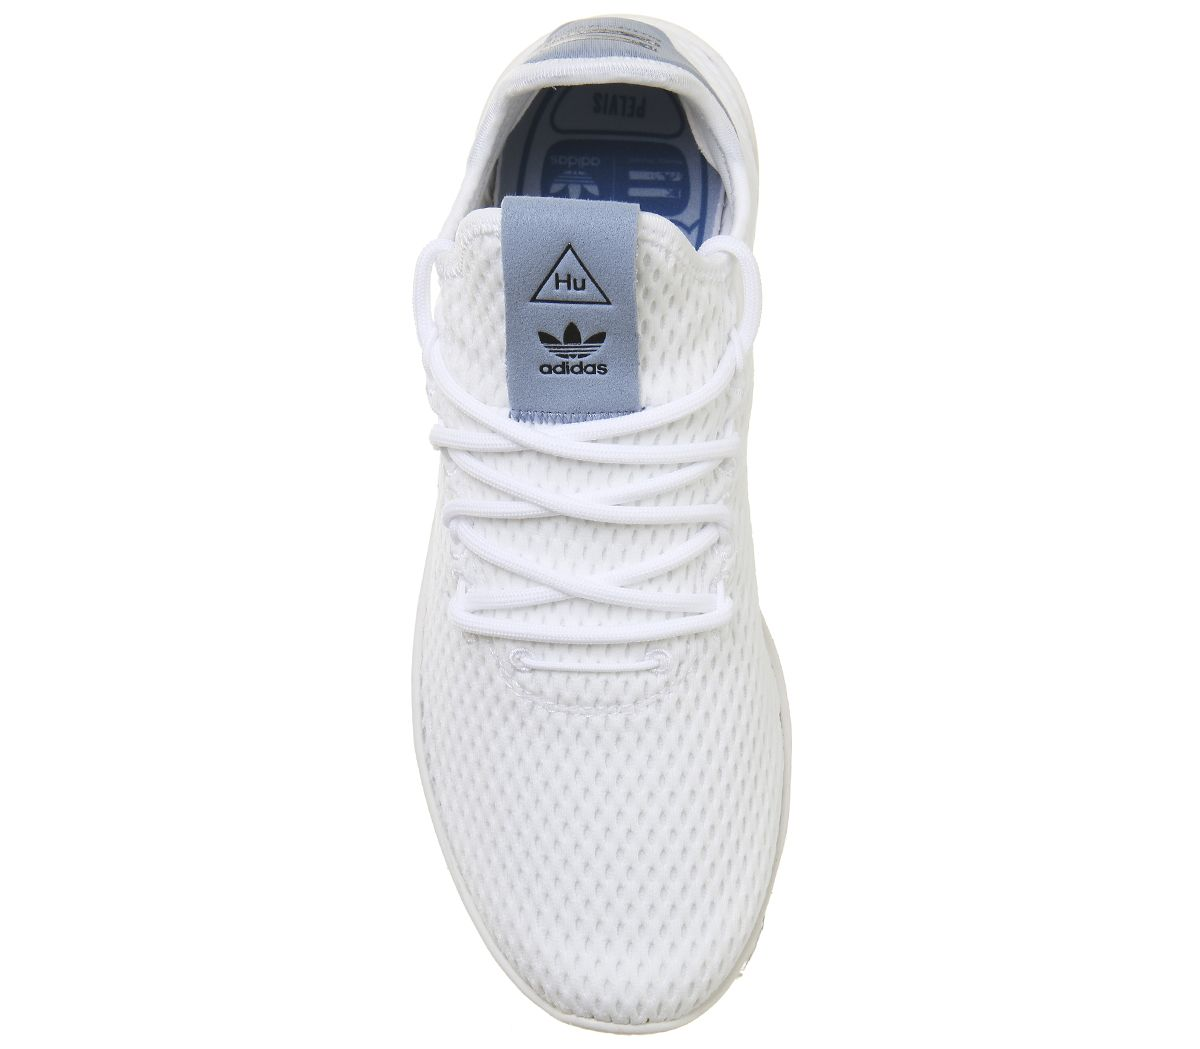 12cccd326f4a1 adidas Pw Tennis Hu White Tactile Blue - Hers trainers